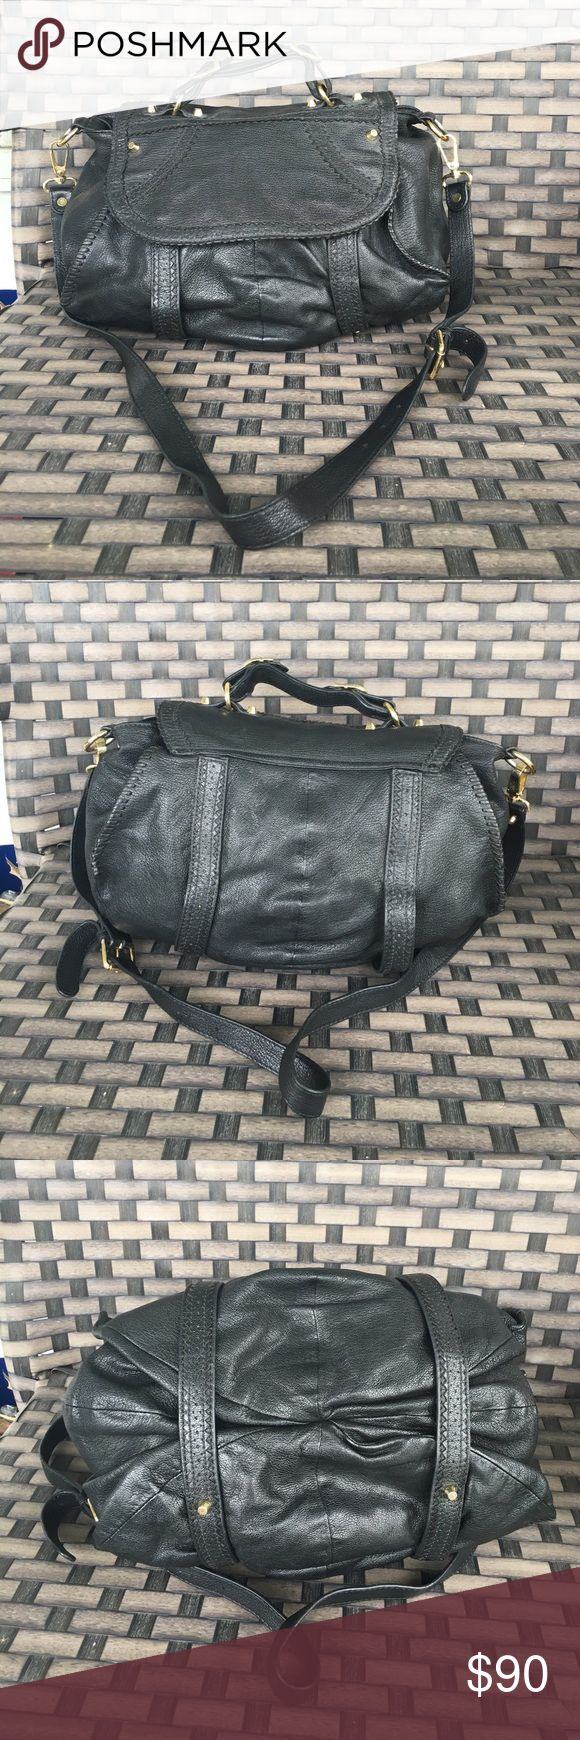 """Treesje black leather crossbody bag Brand is carried by anthropologie the purse in the 2nd to last pic is the same size just a different style. This bag is in excellent condition the leather is amazing! 13""""X9.5"""" Anthropologie Bags Crossbody Bags"""